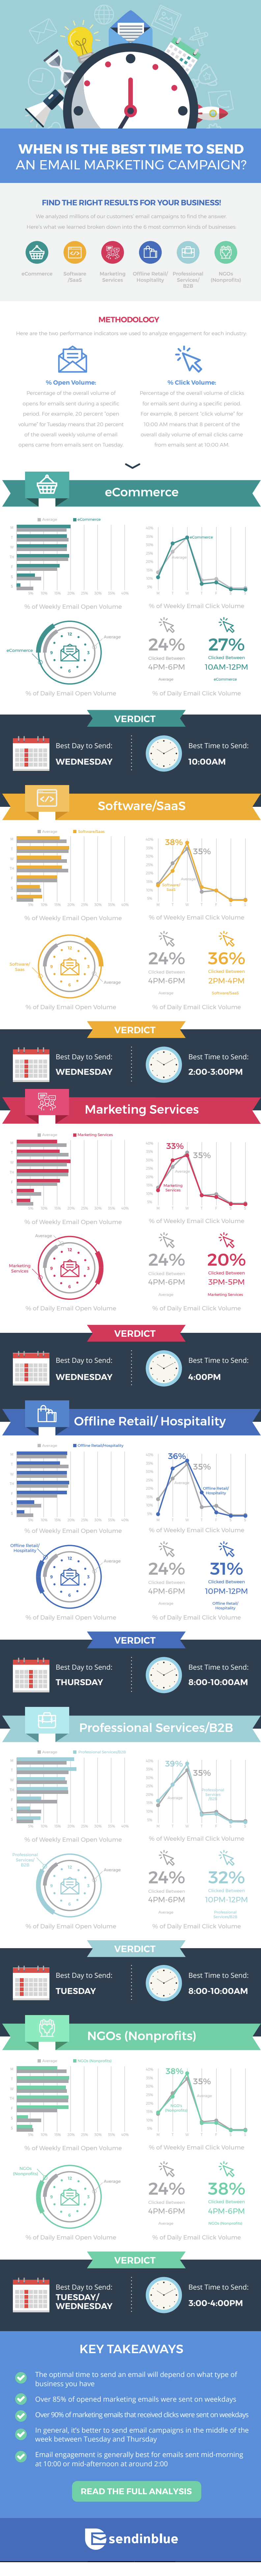 When is the Best Time to Send an Email Marketing Campaign - #Infographic